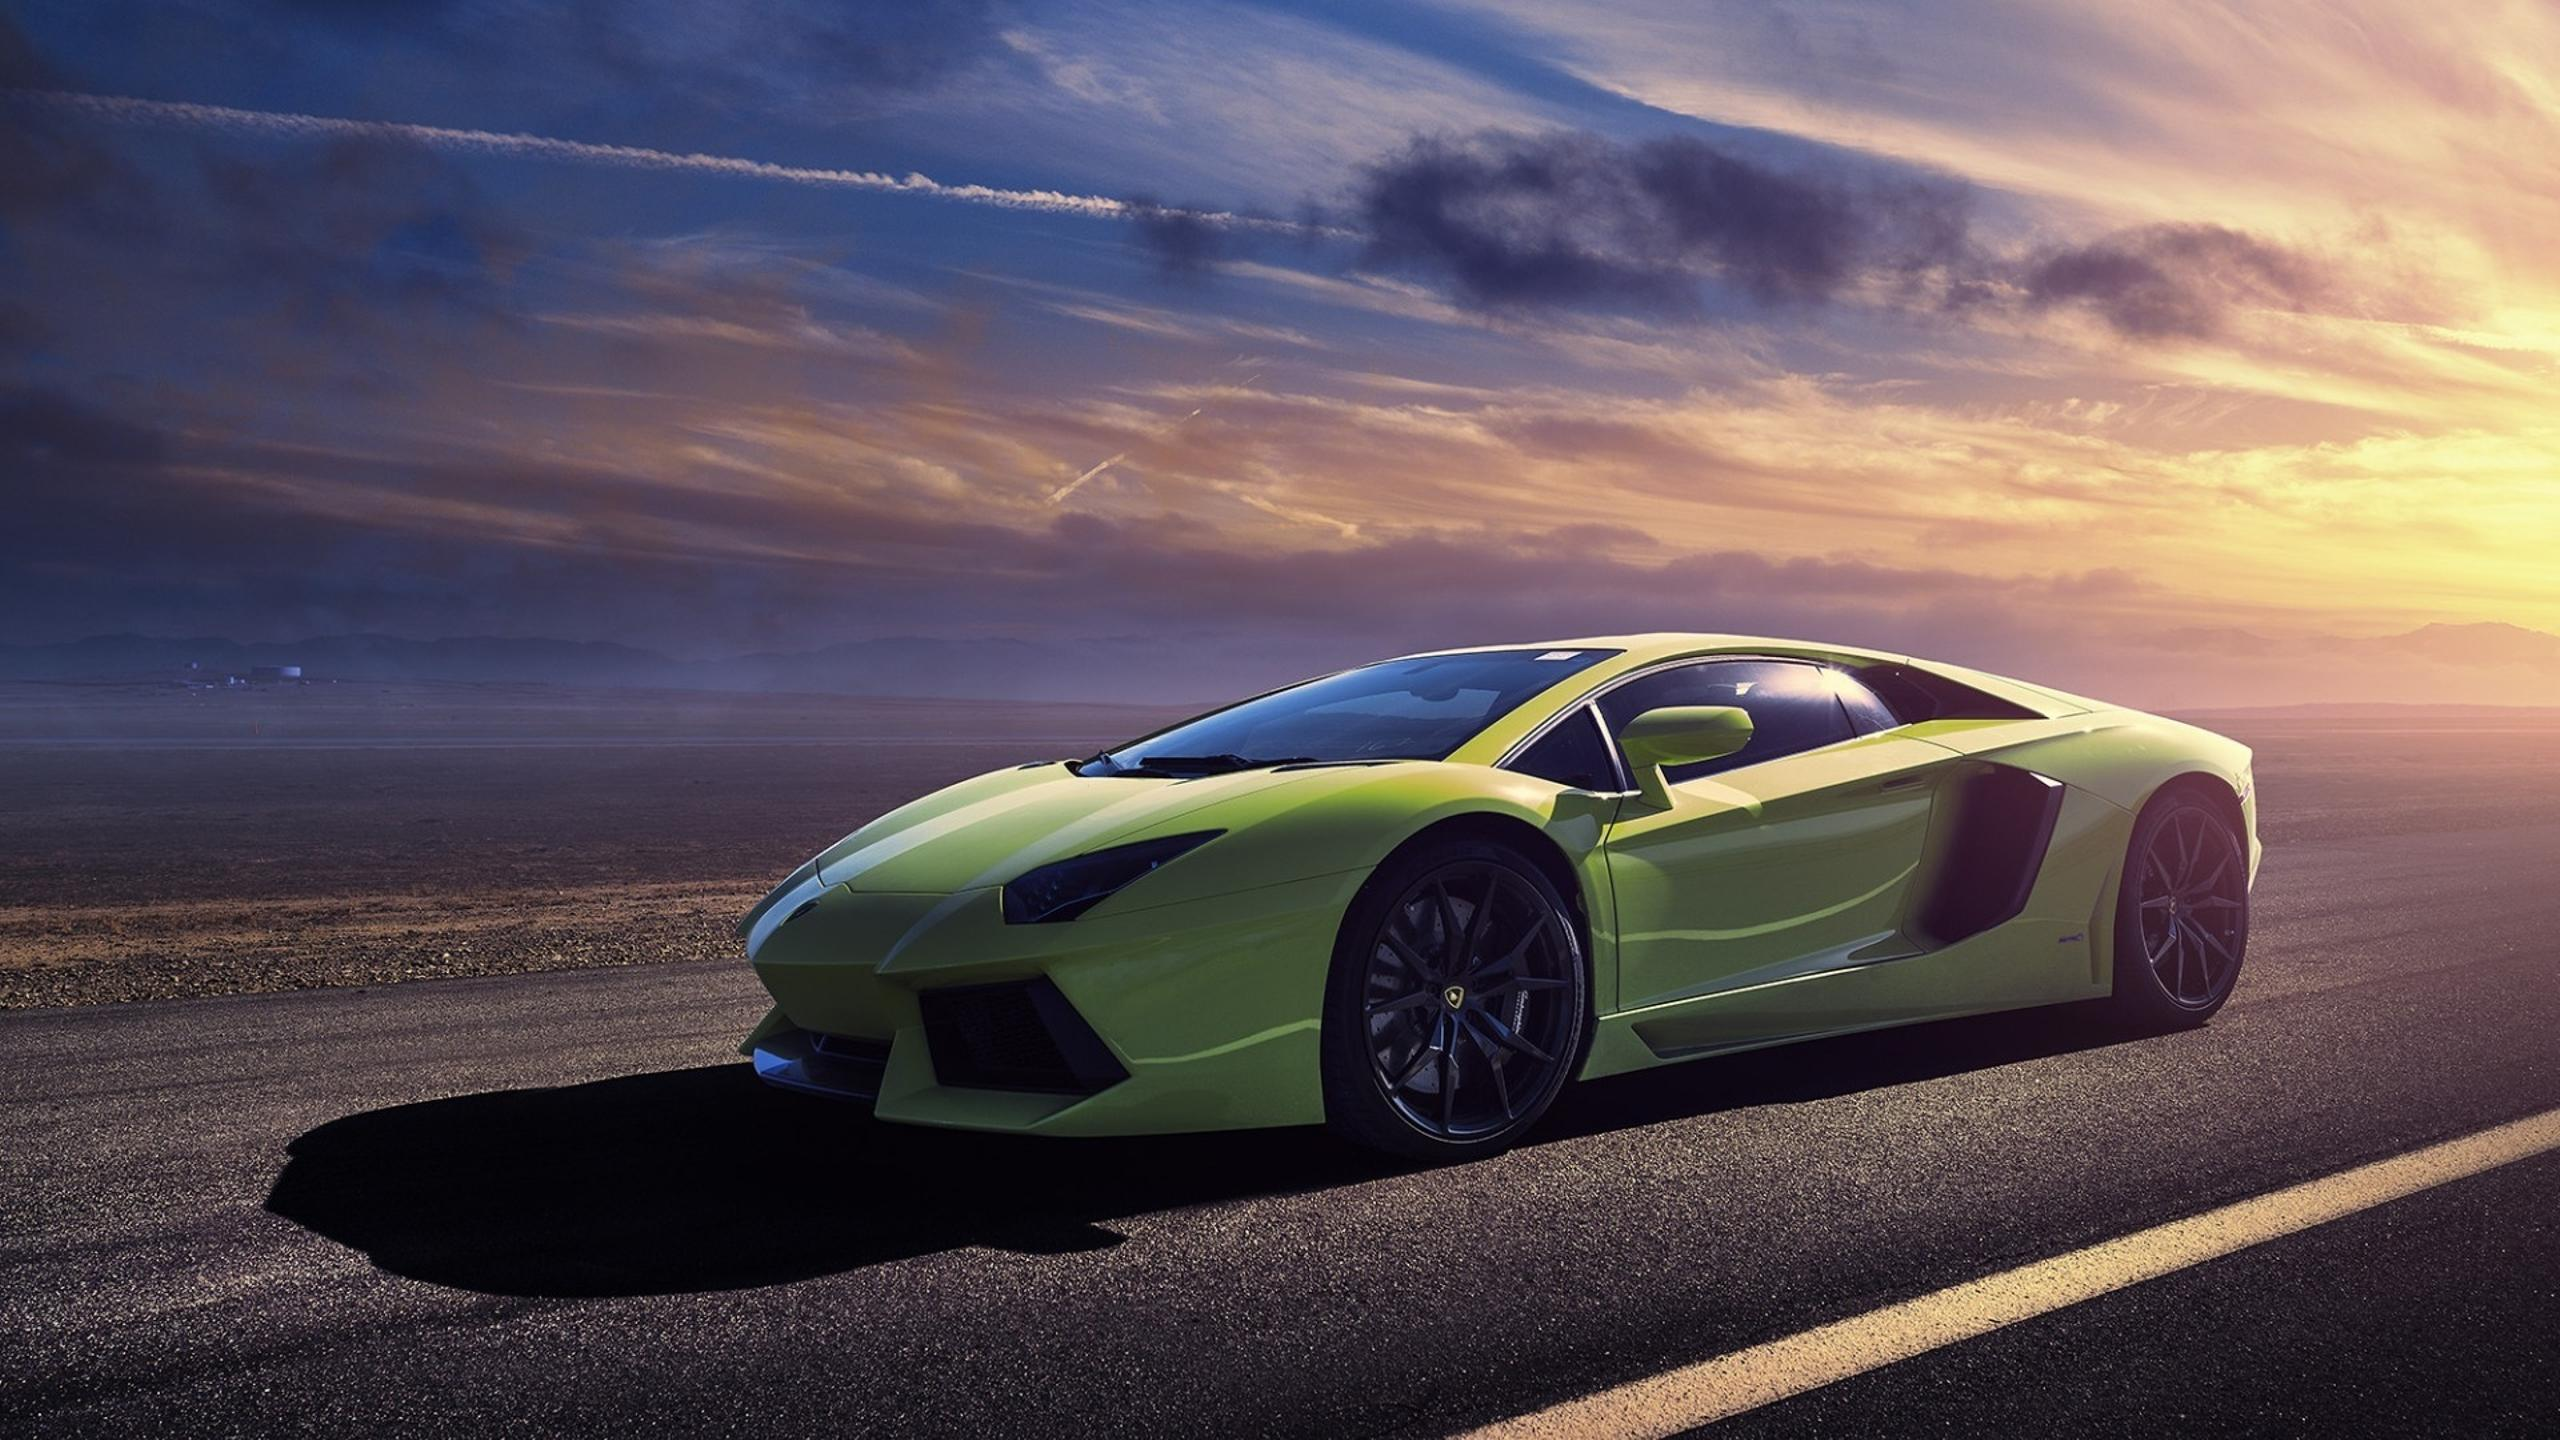 Green Lamborghini Aventador Lp700 In The Sunset Wallpaper